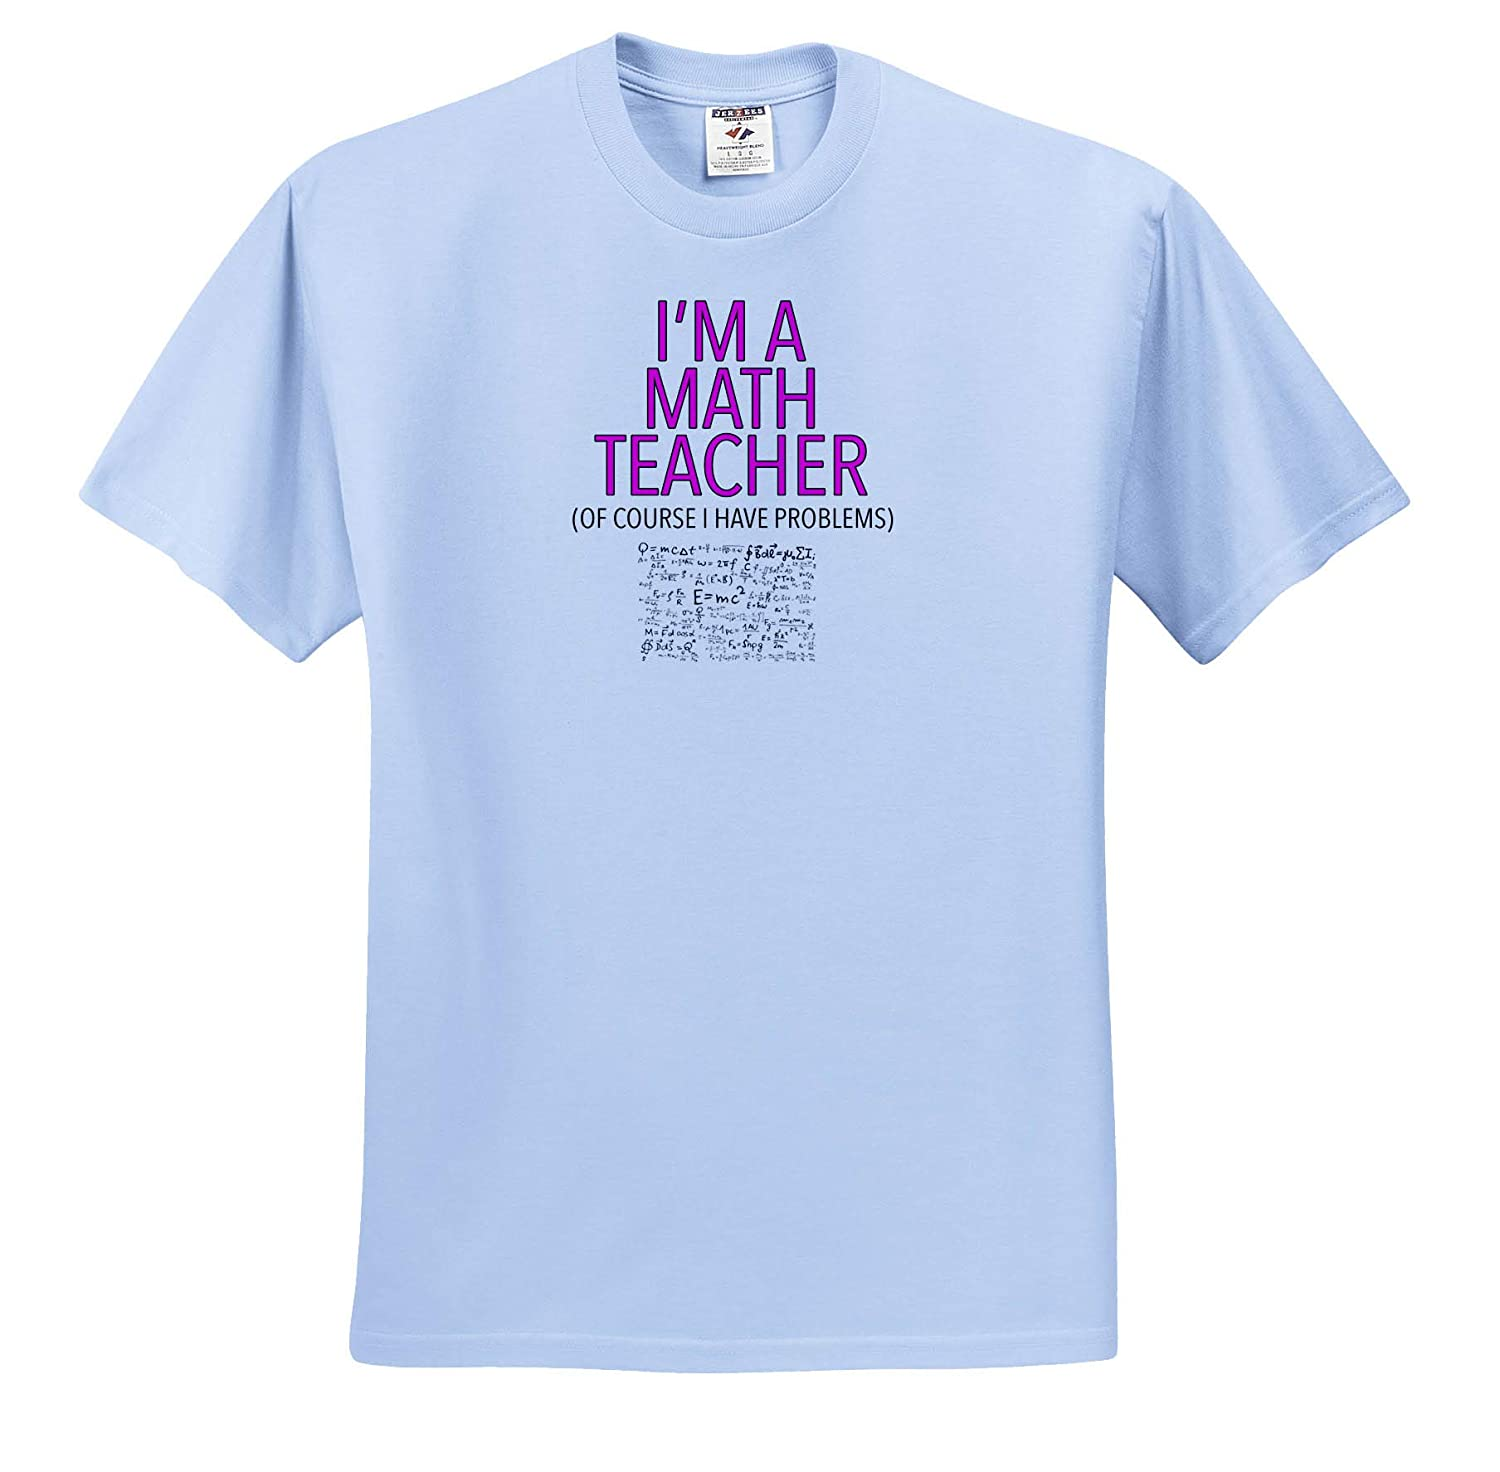 3dRose EvaDane Im A Math Teacher of Course I Have Problems Pink Funny Sayings ts/_310843 Adult T-Shirt XL